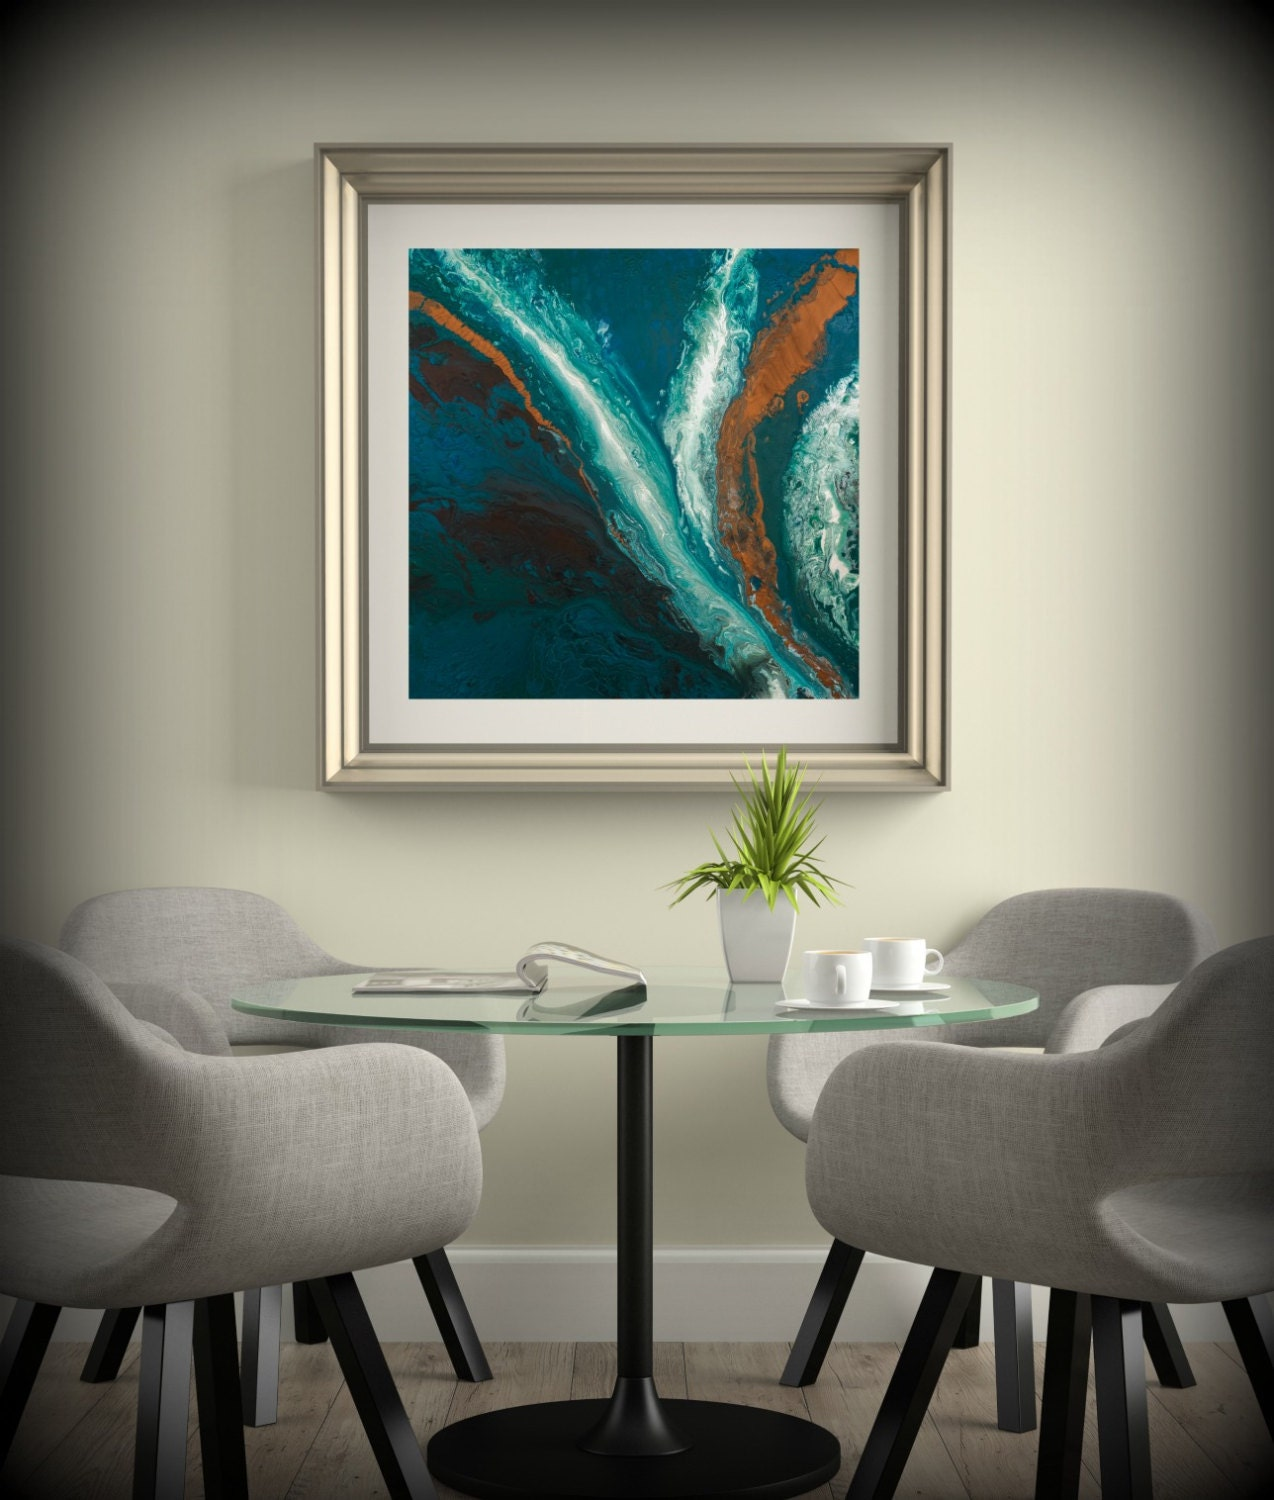 Dining Room Art Prints: Dining Room Art Square Wall Art Prints Fine Art Prints Giclee